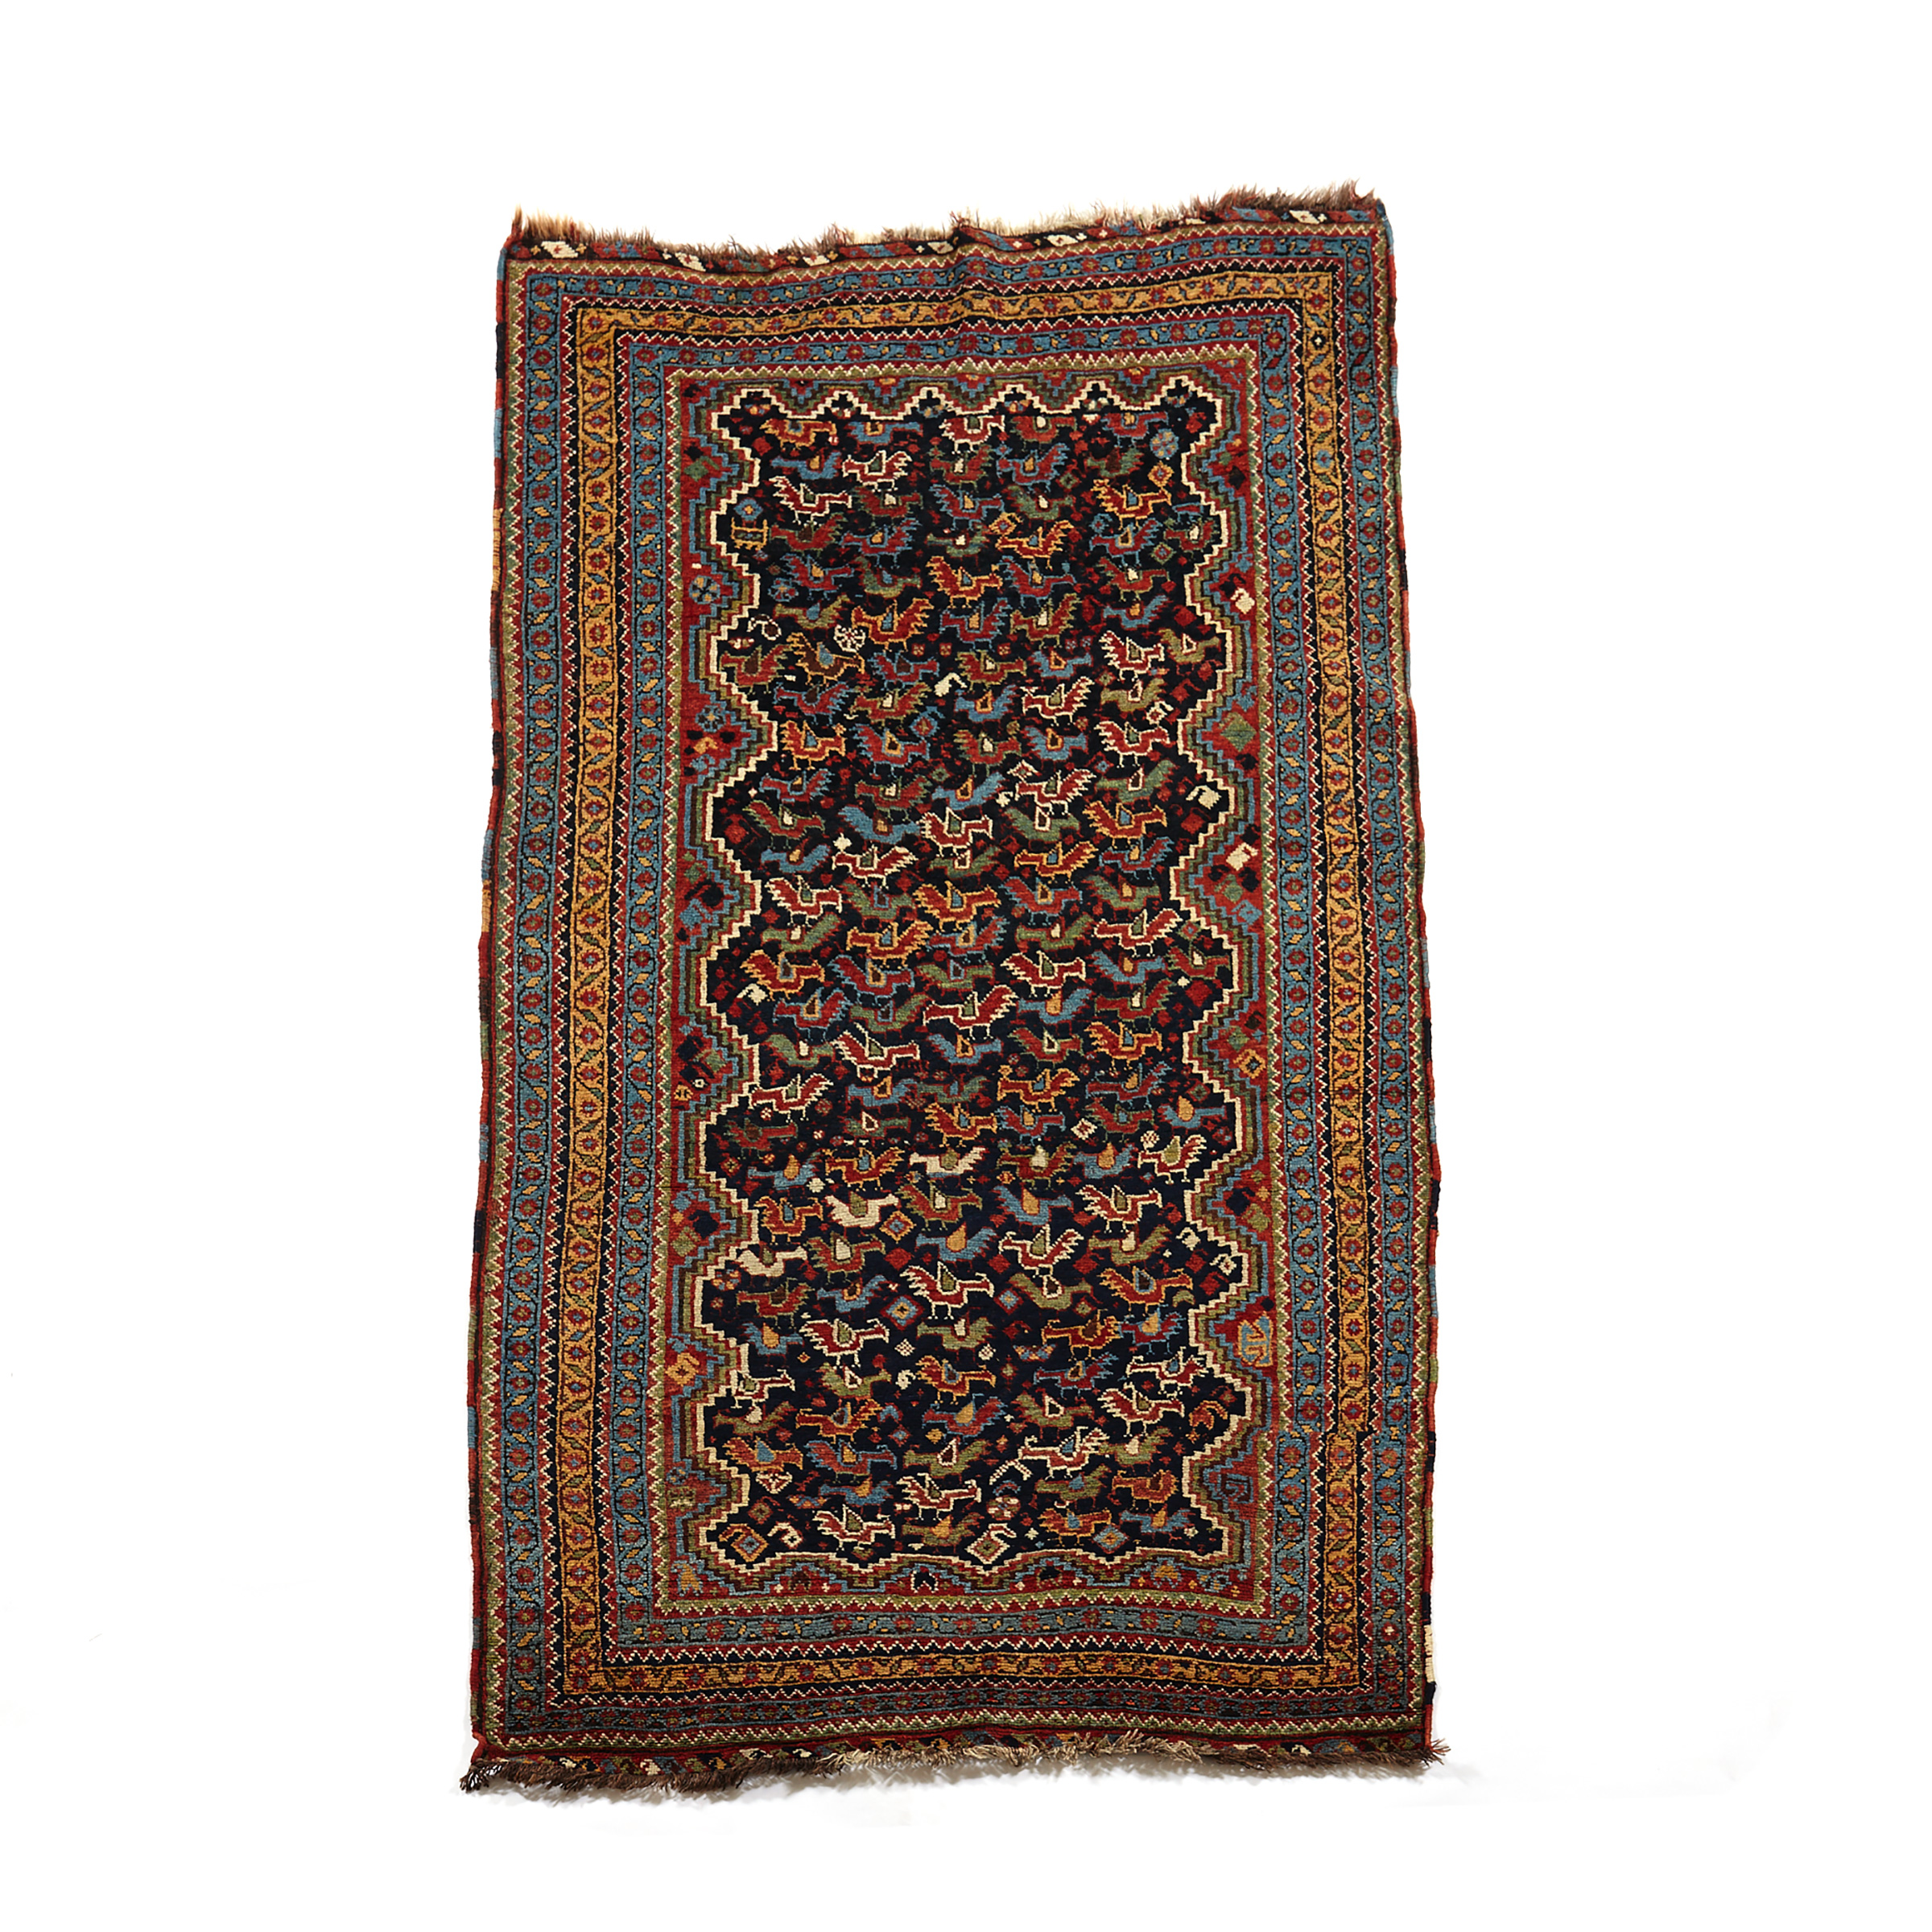 Afshar Rug, Persian, late 19th/ early 20th century